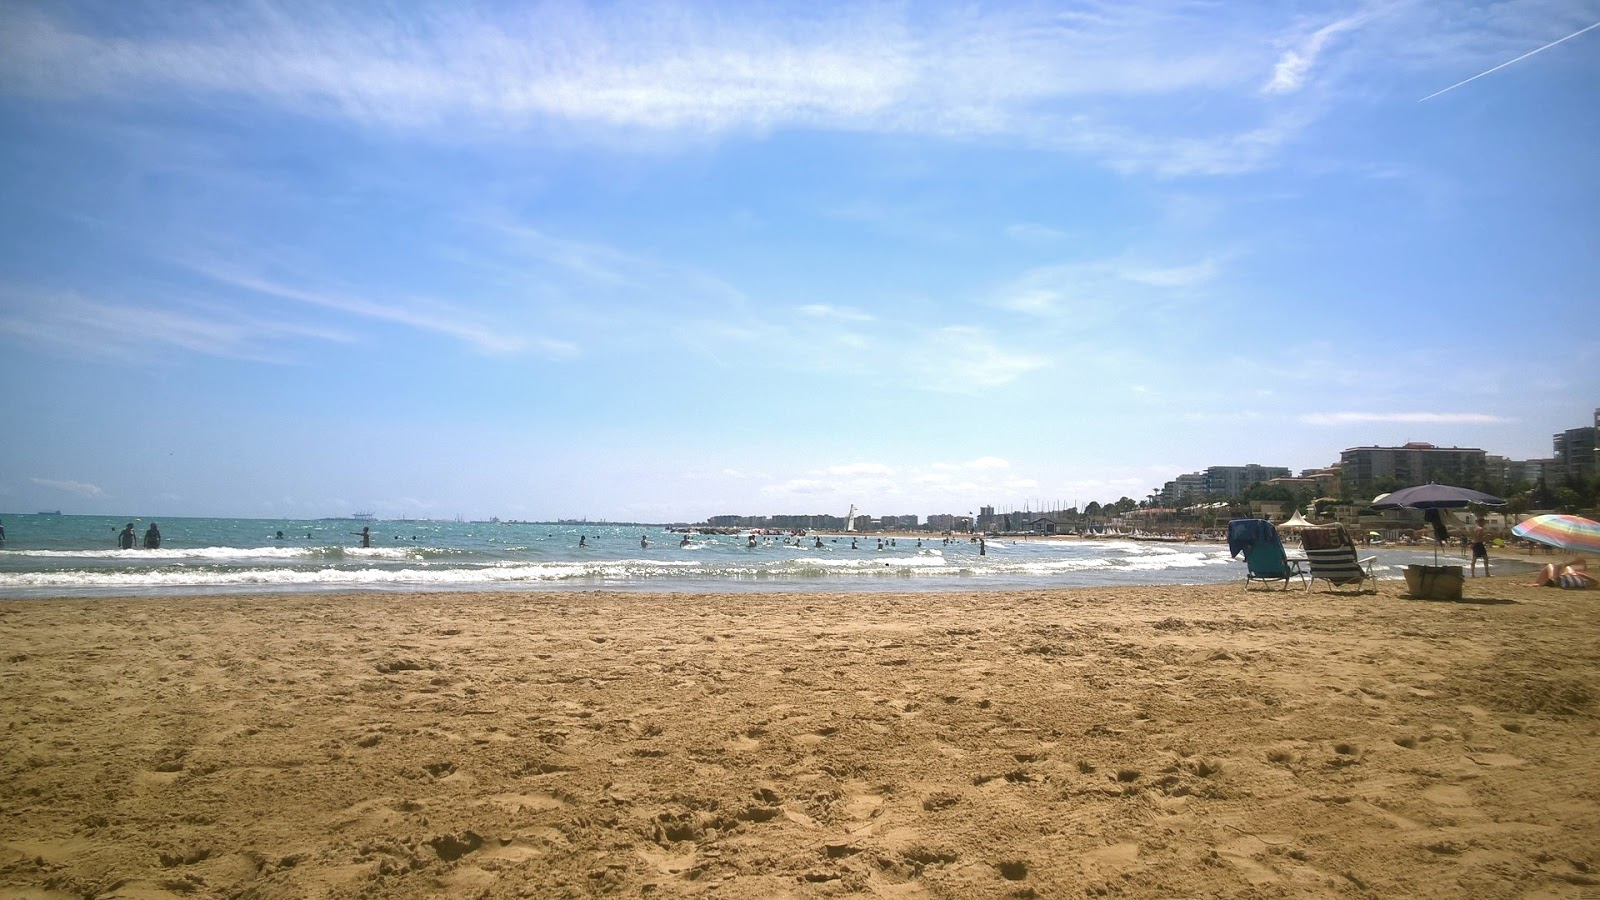 Benicassim beach and sea with blue skies